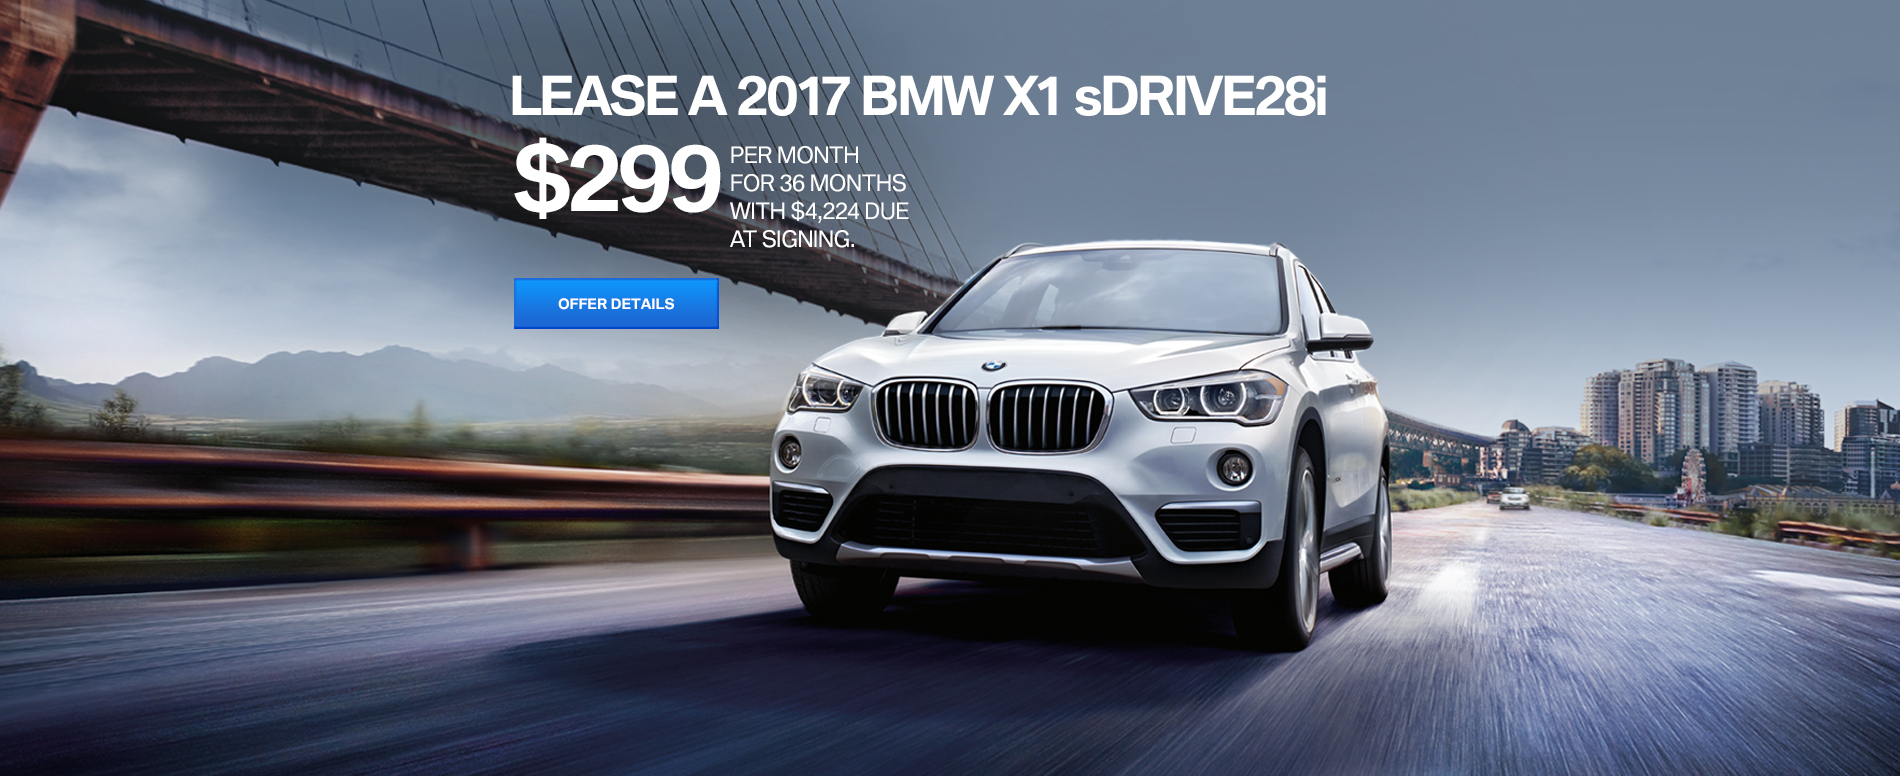 LEASE A 2017 X1 sDRIVE28i FOR $299 /MO FOR 36 MONTHS